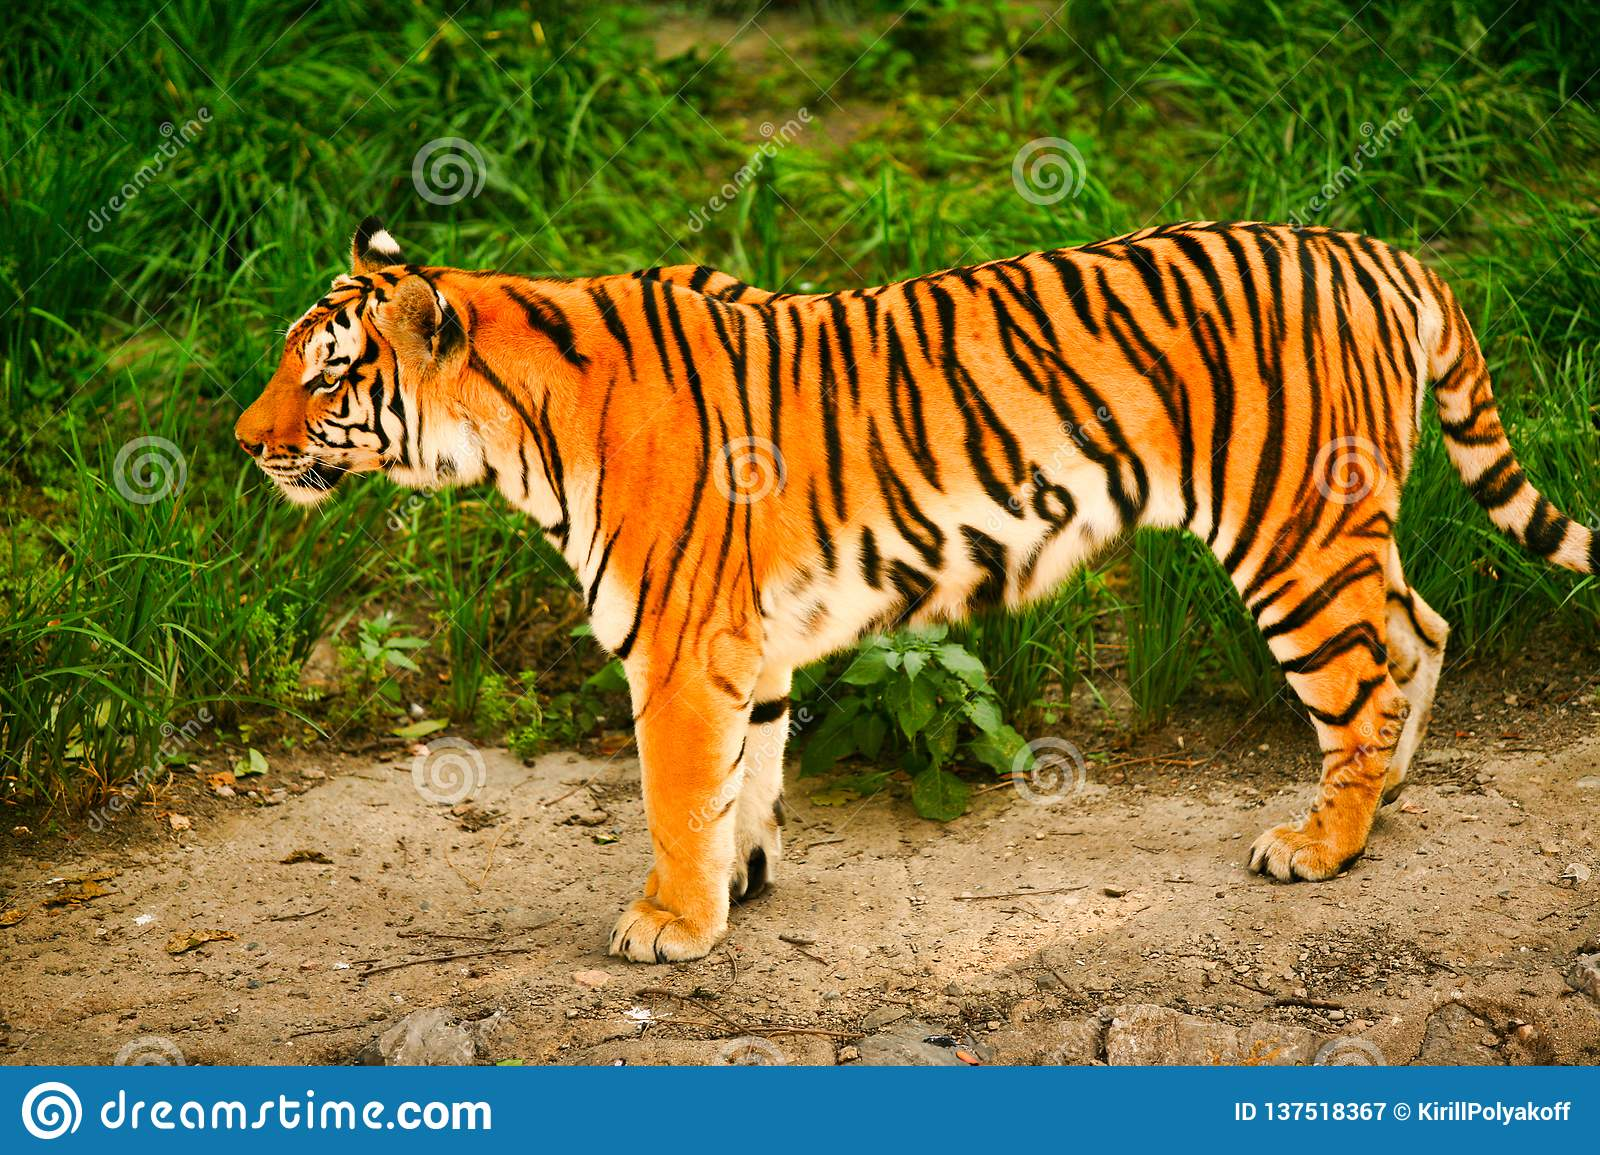 Bengal tiger stands on the background of green grass.